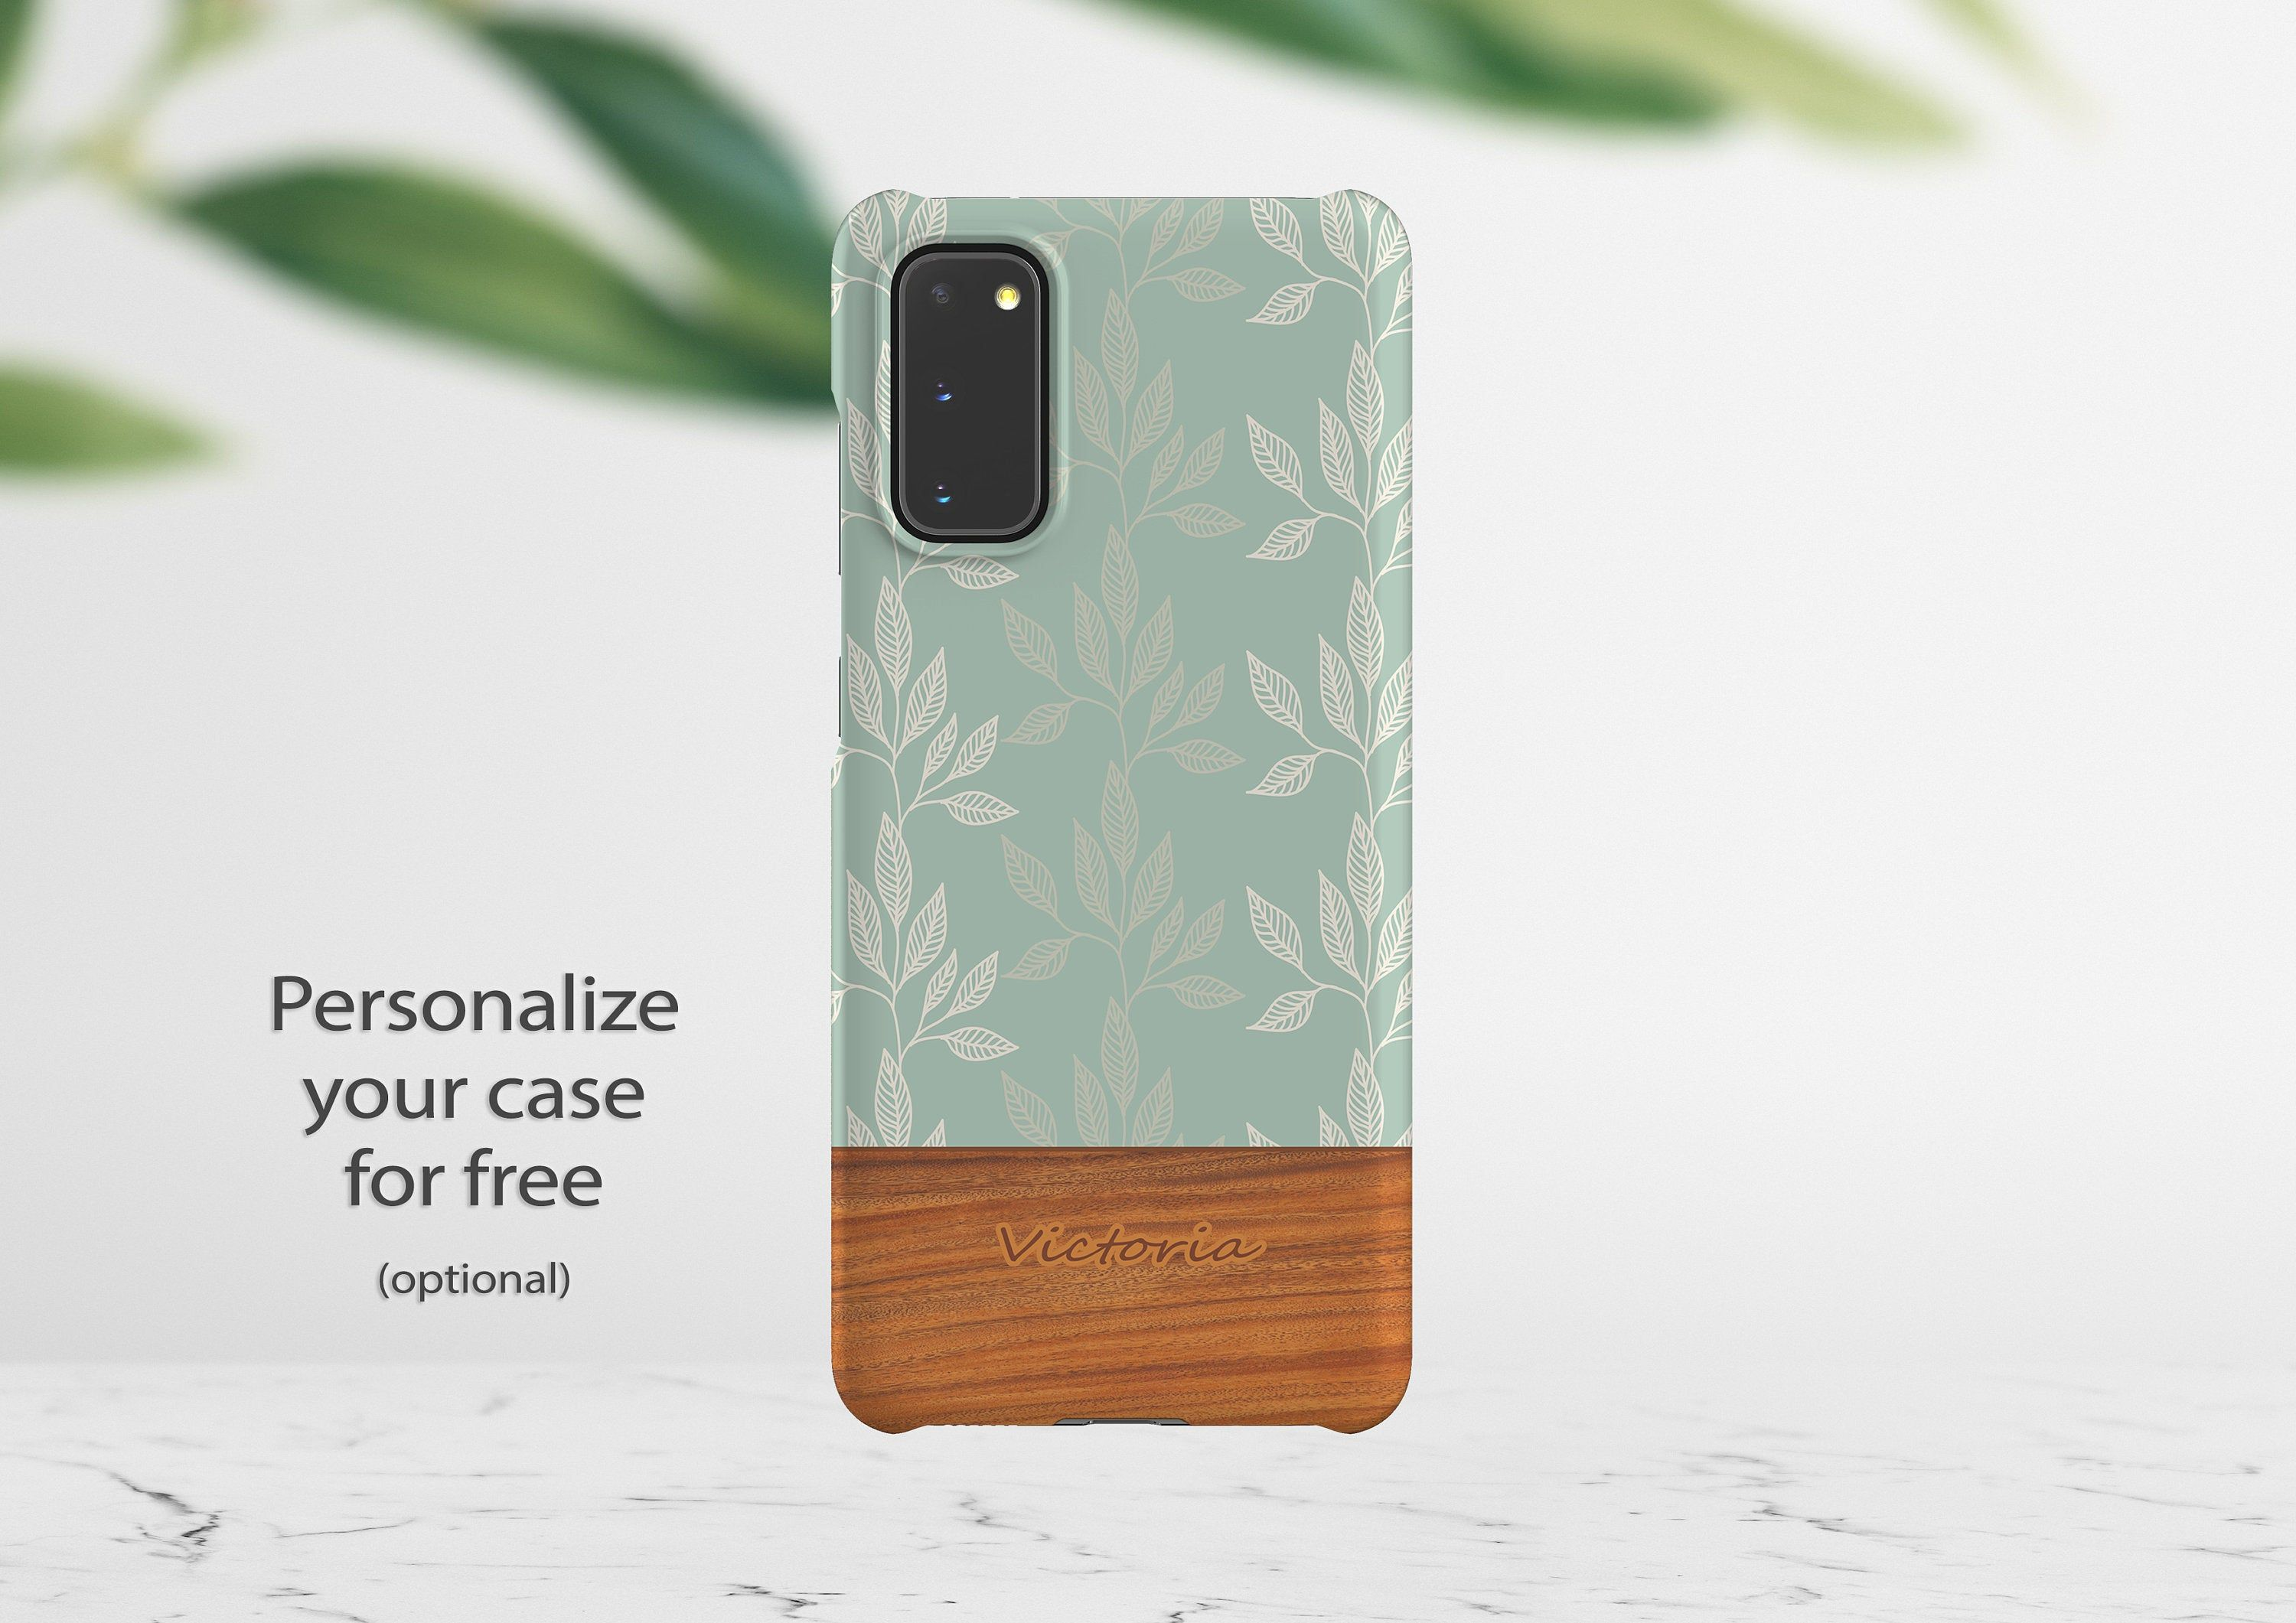 Personalized Flowers Galaxy S20 Case Galaxy Note 20 Case Galaxy S10e Case Galaxy S10 Plus Case Galaxy Note 9 Case Galaxy Note 10 Case #GalaxyS10Case #GalaxyS9PlusCase #GalaxyNote10Plus #GalaxyA70 #GalaxyNote10Case #GalaxyS10eCase #GalaxyNote8 #GalaxyS9Case #GalaxyS10PlusCase #GalaxyNote9Case